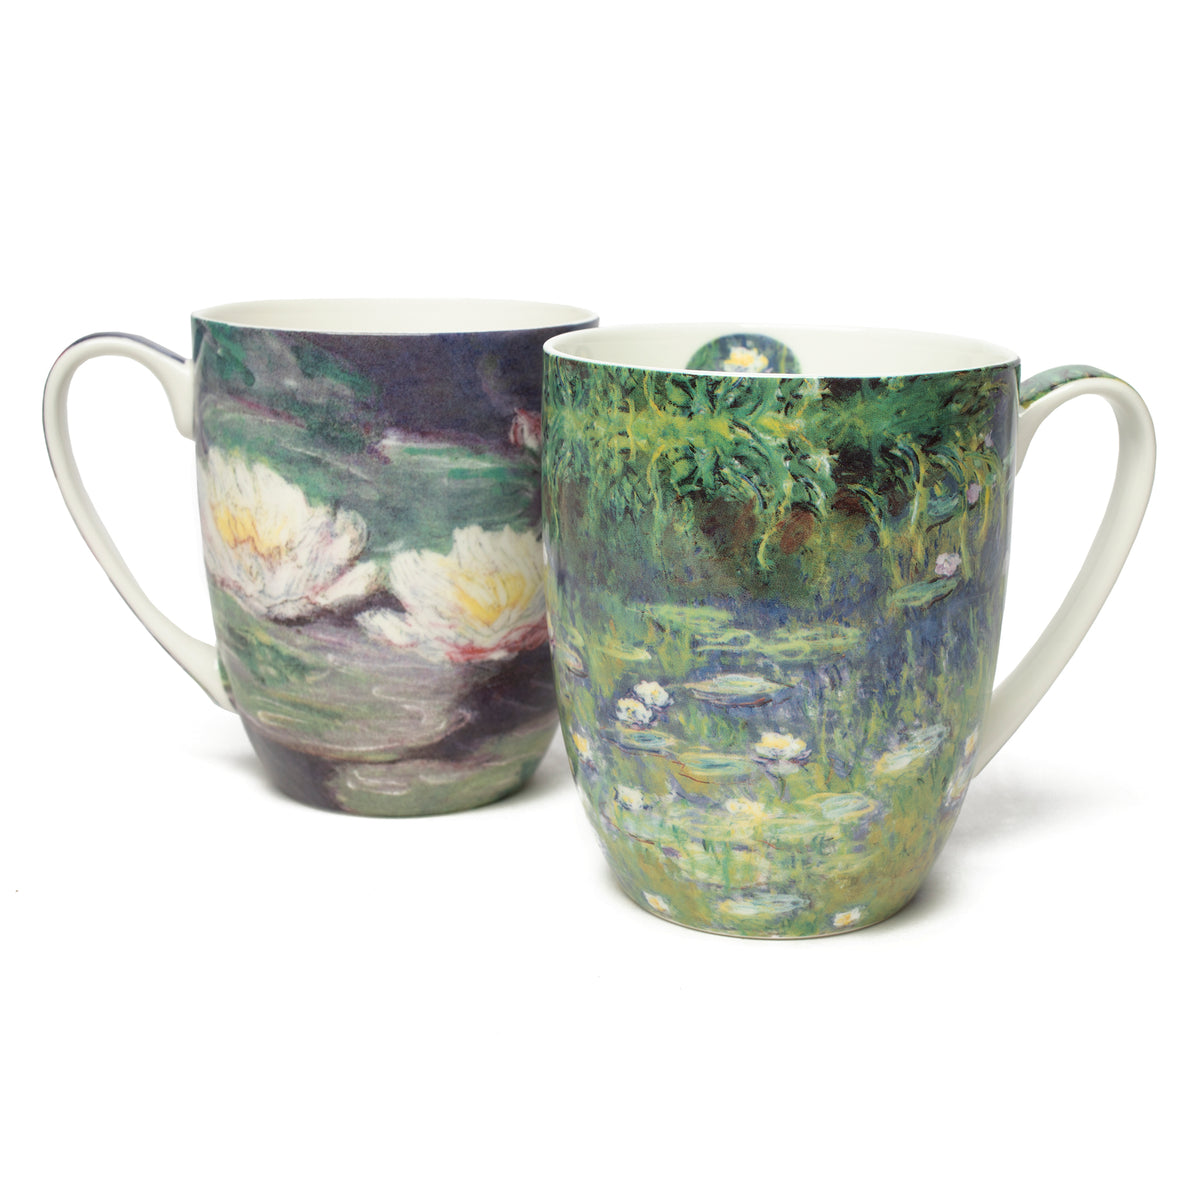 Pair of Fine Bone China Mugs featuring Monet's Water Lilies | Getty Store